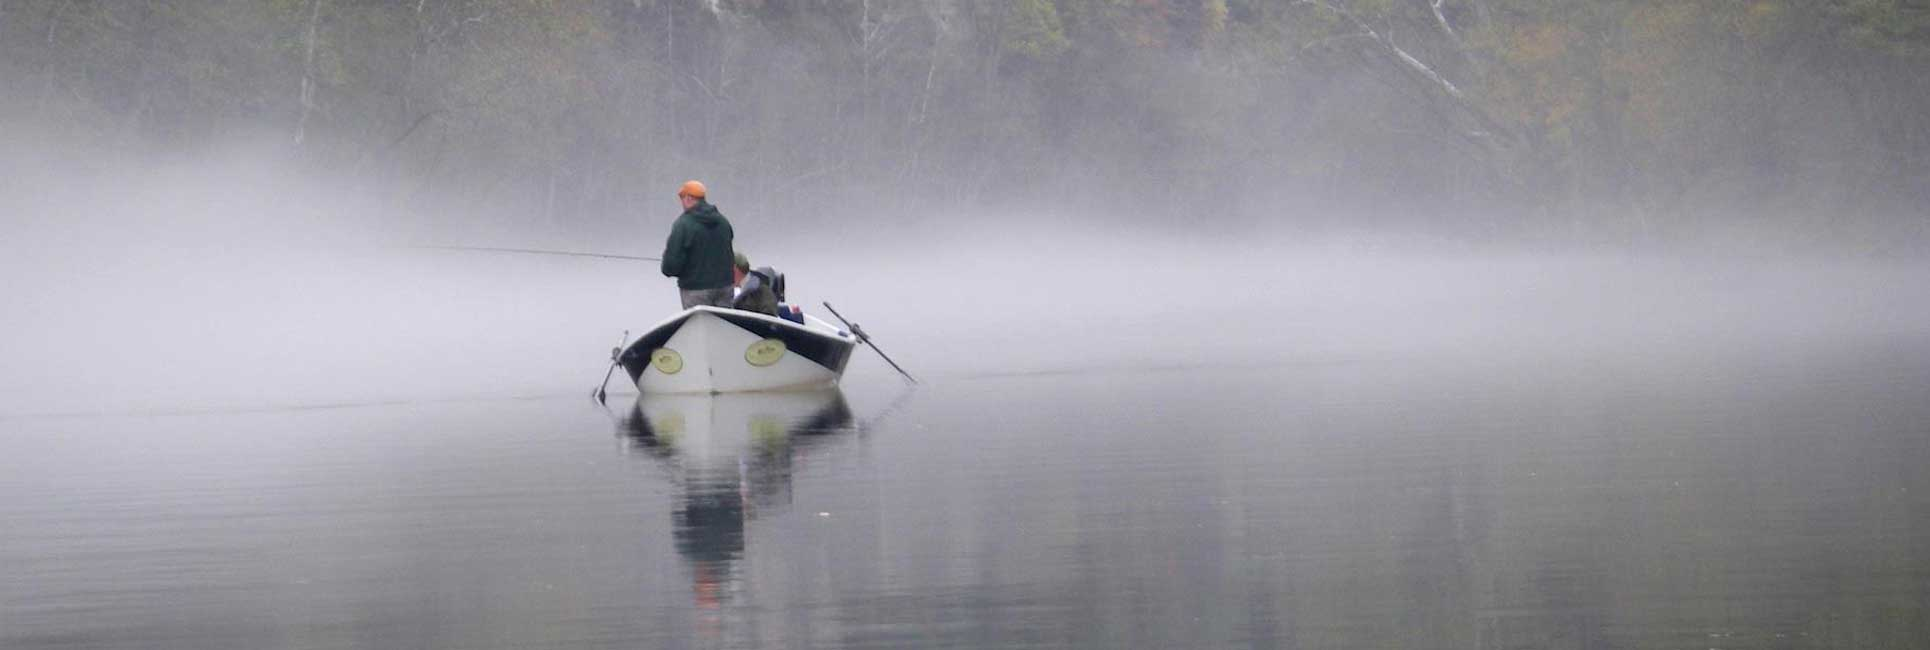 fly fishing guide on a fishing boat in Georgia with foggy weather